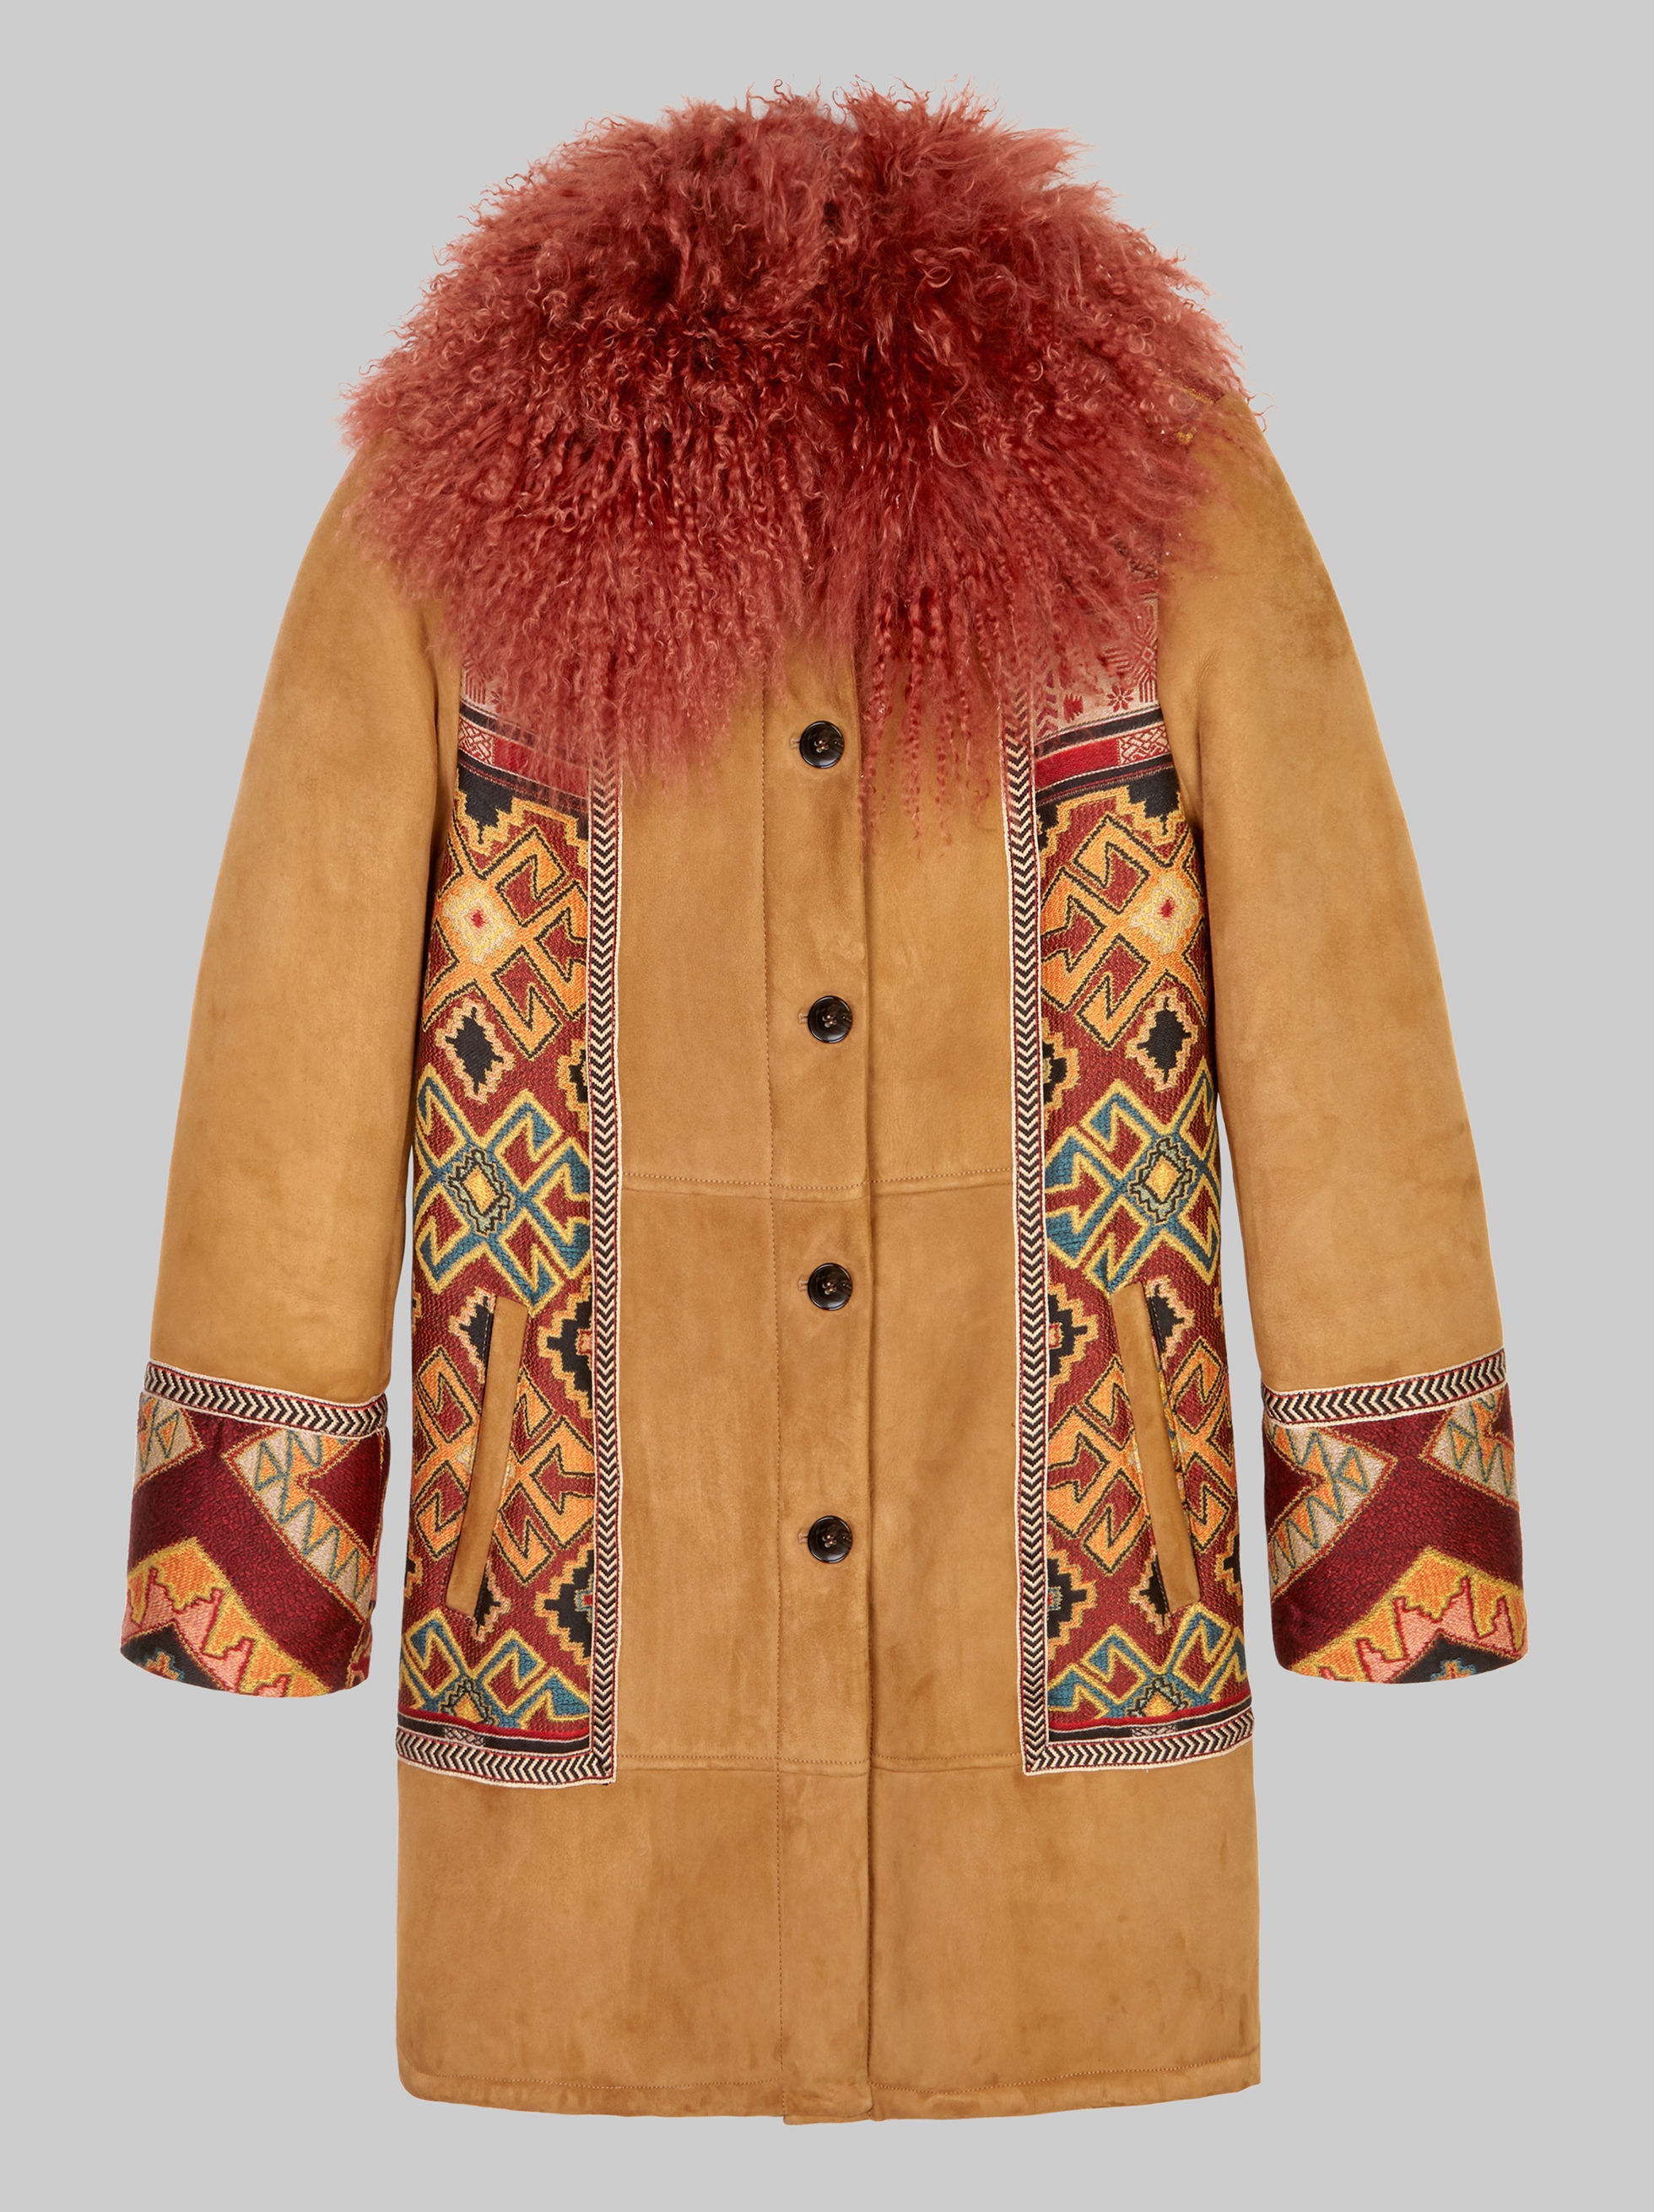 JACQUARD SHEARLING JACKET